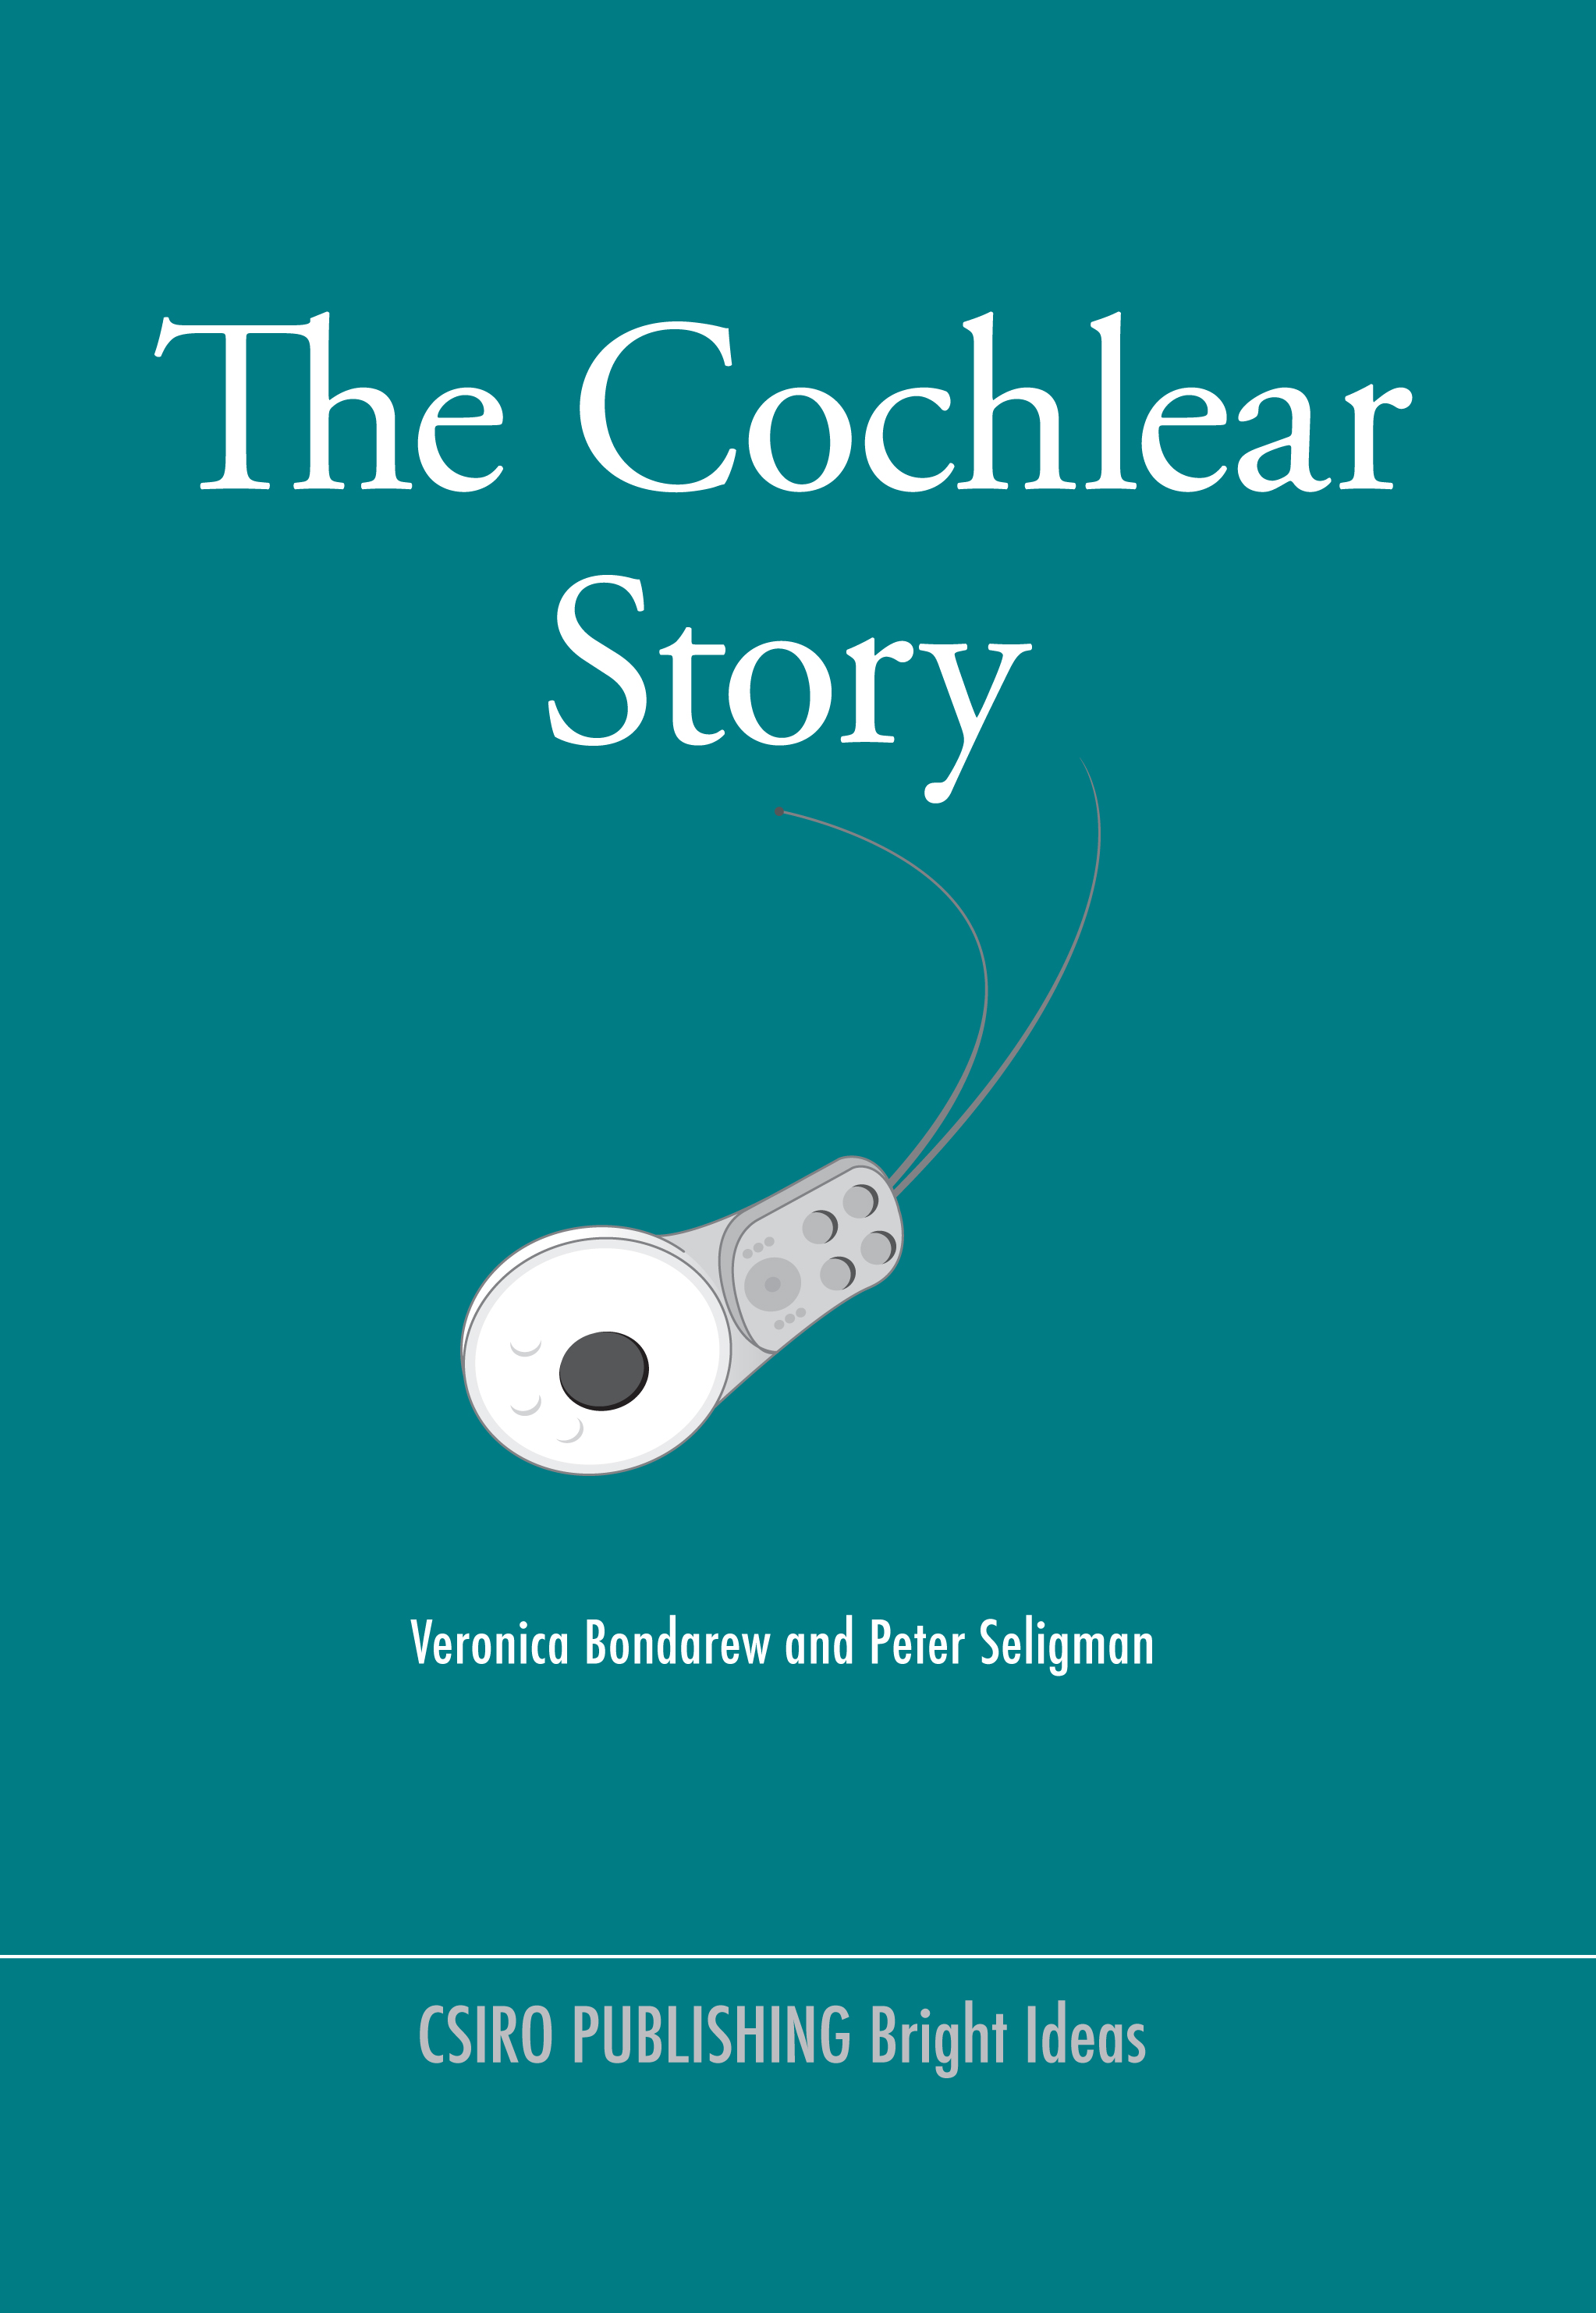 The cover image of The Cochlear Story, featuring a white cochlear hearing